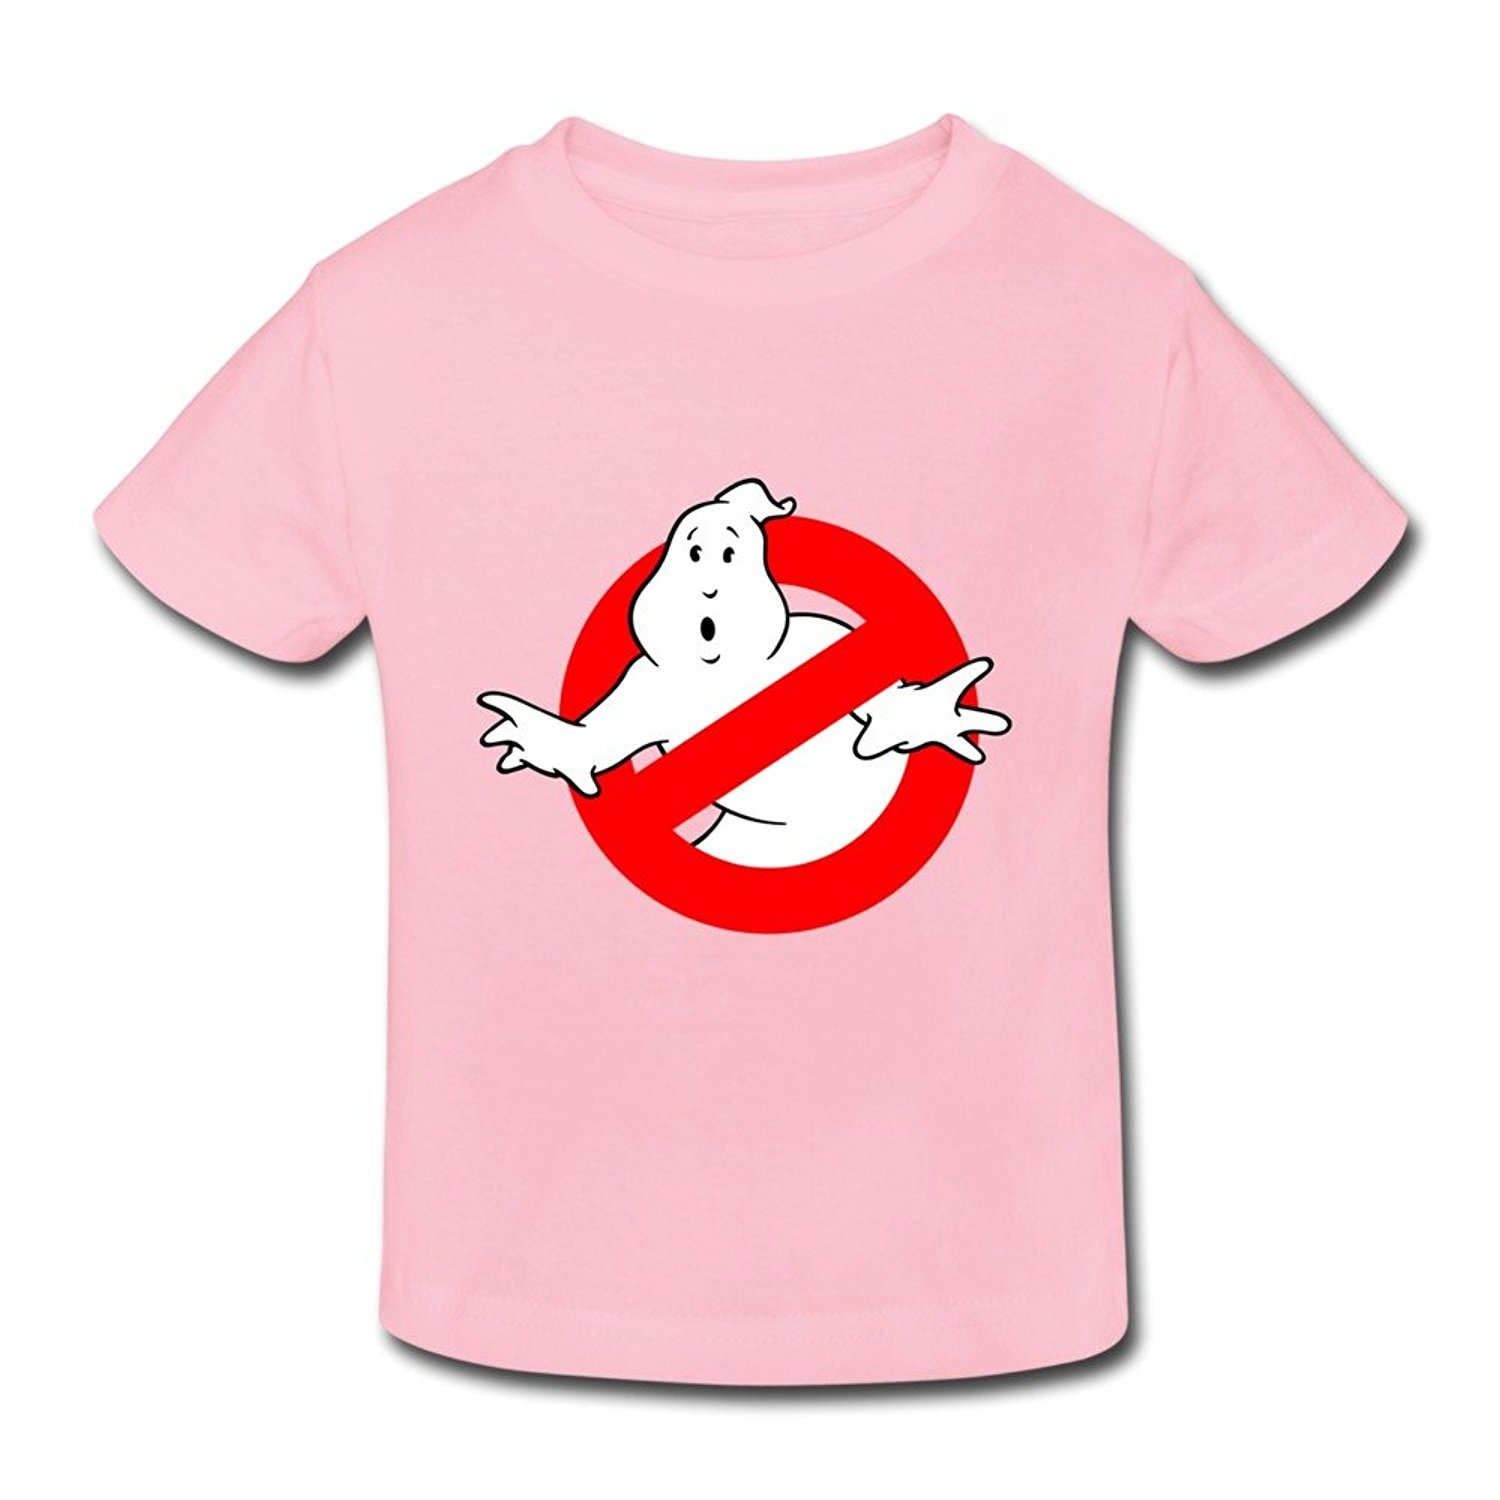 EdwinLiop Ghostbusters Logo Little Boys Girls T Shirt for Toddler